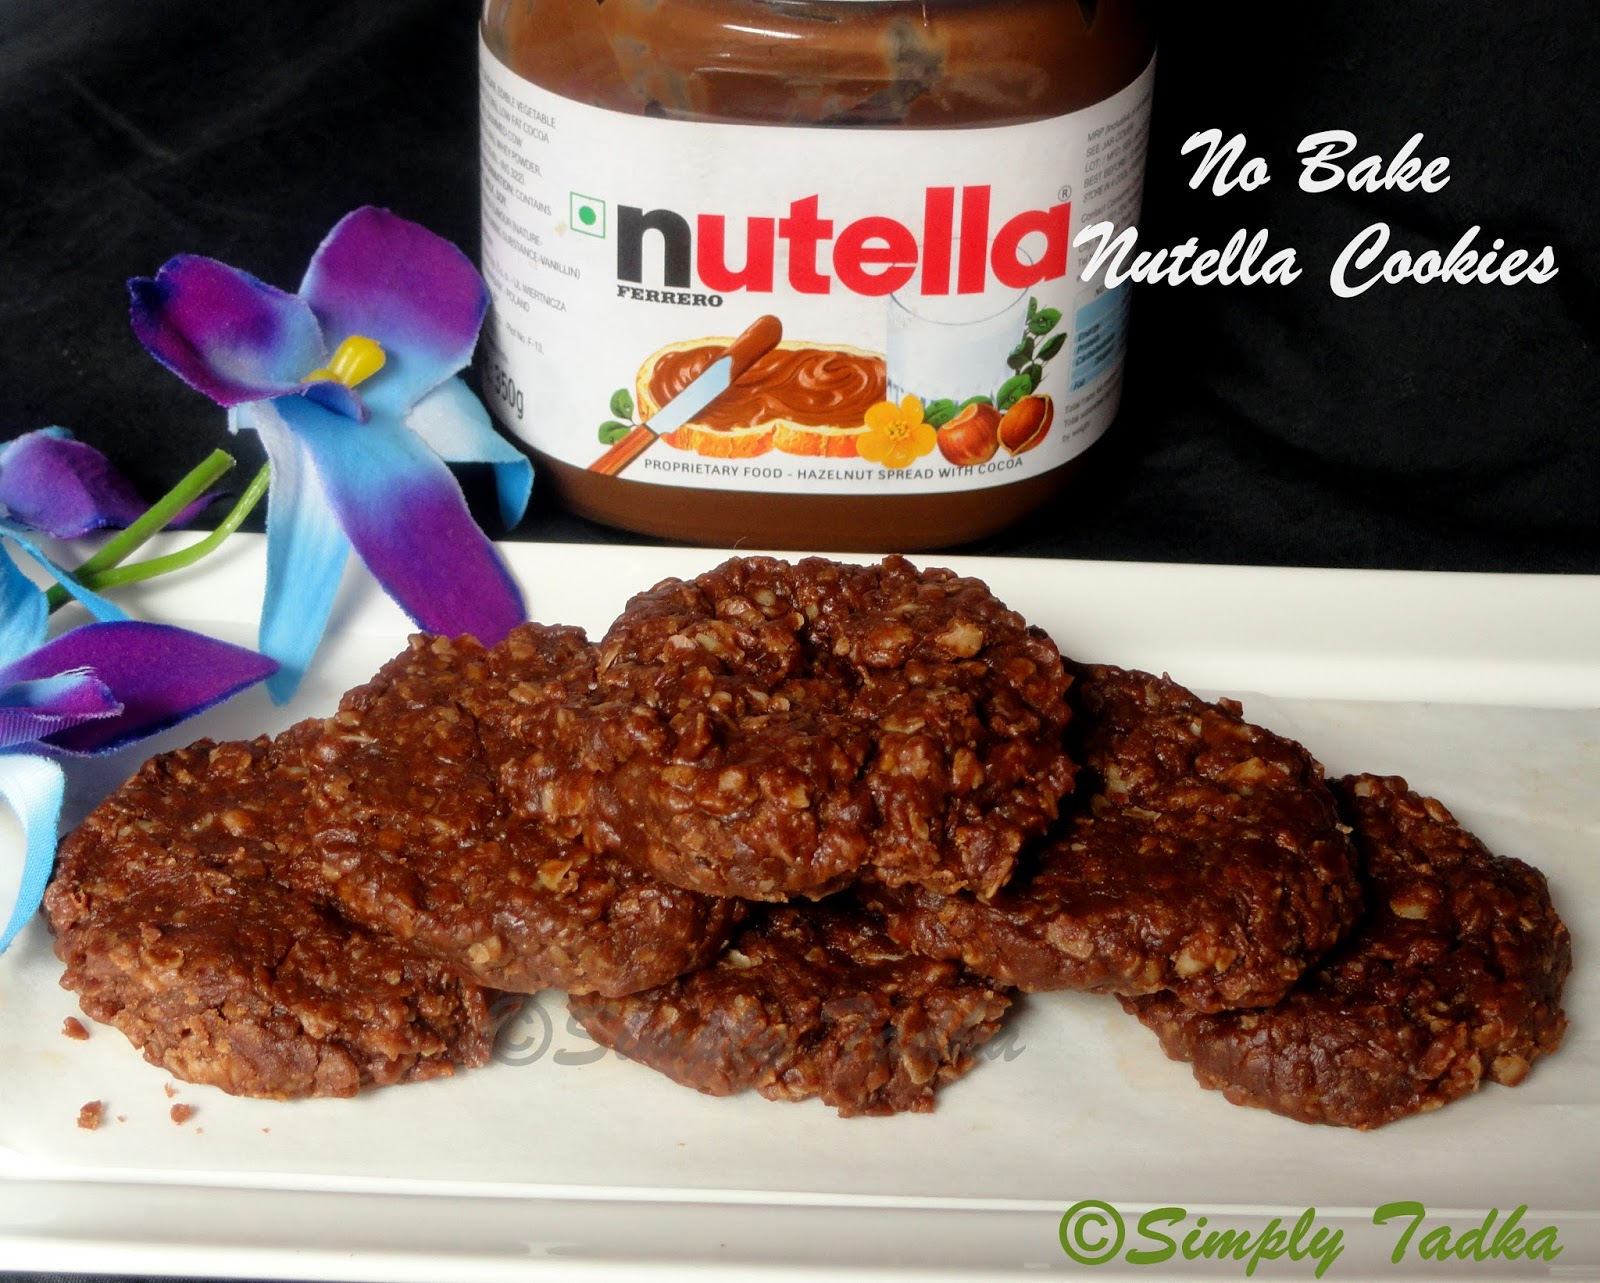 No Bake Nutella Oats Cookies | Simply Tadka